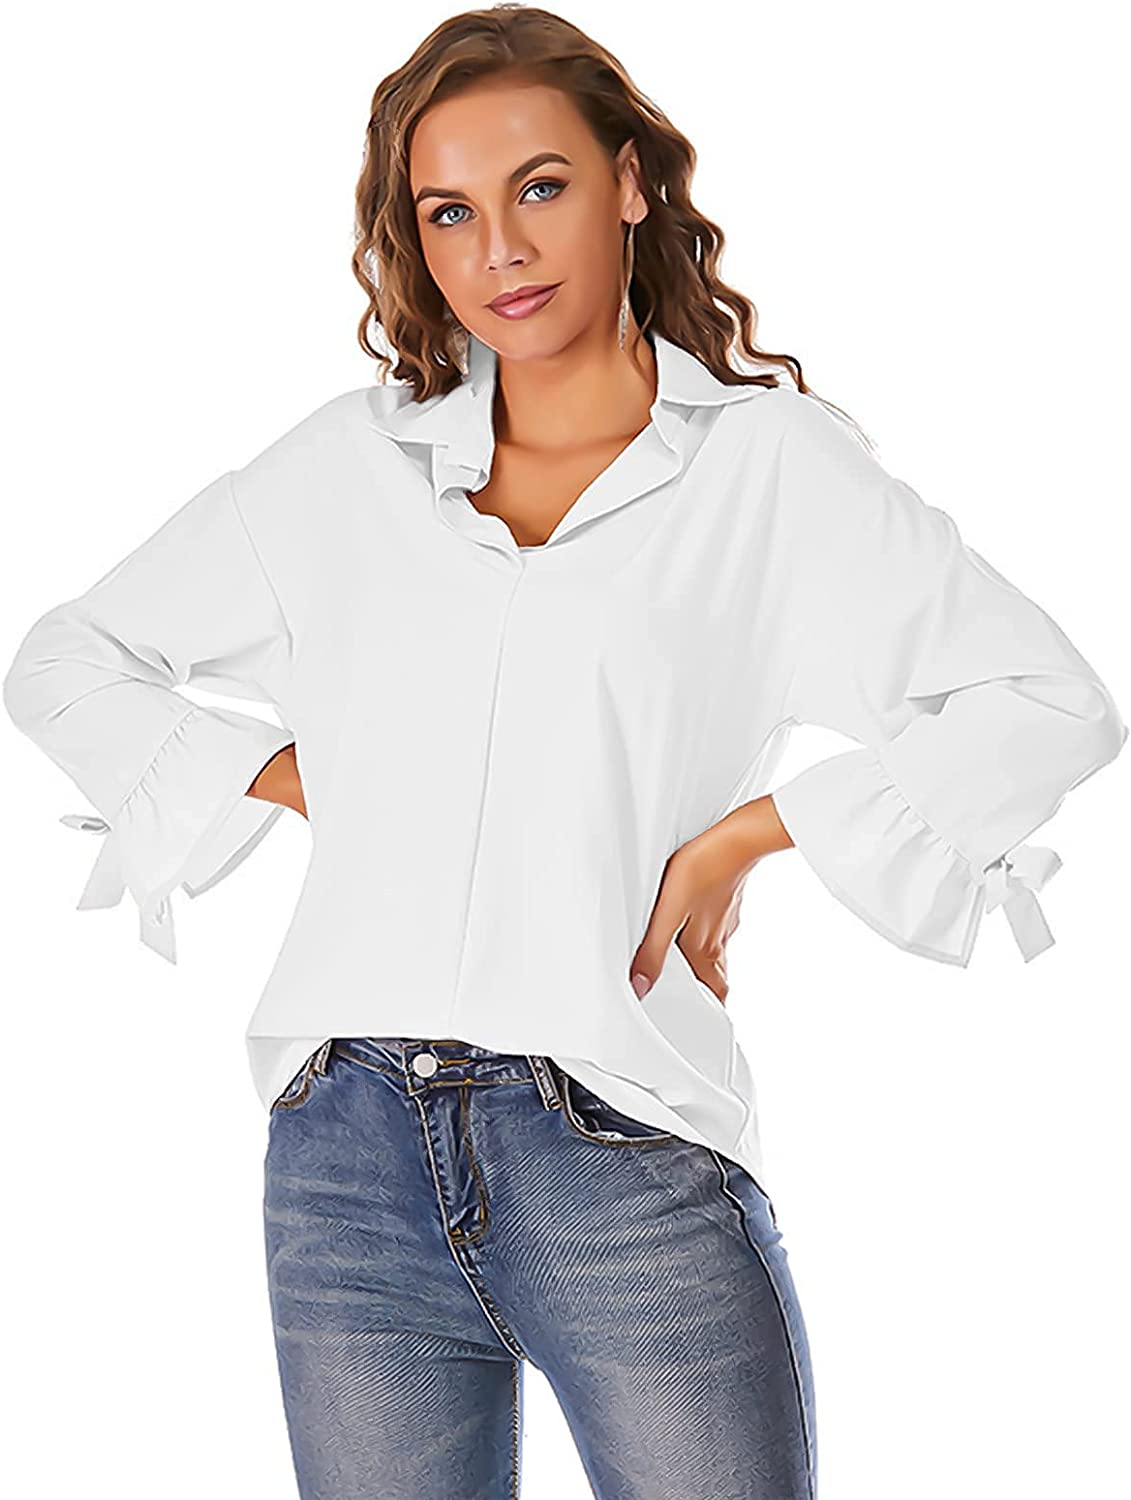 Womens V Neck Collared Shirts Casual Bell Long Sleeve No Button Down Cotton Shirts Work Blouse Tops